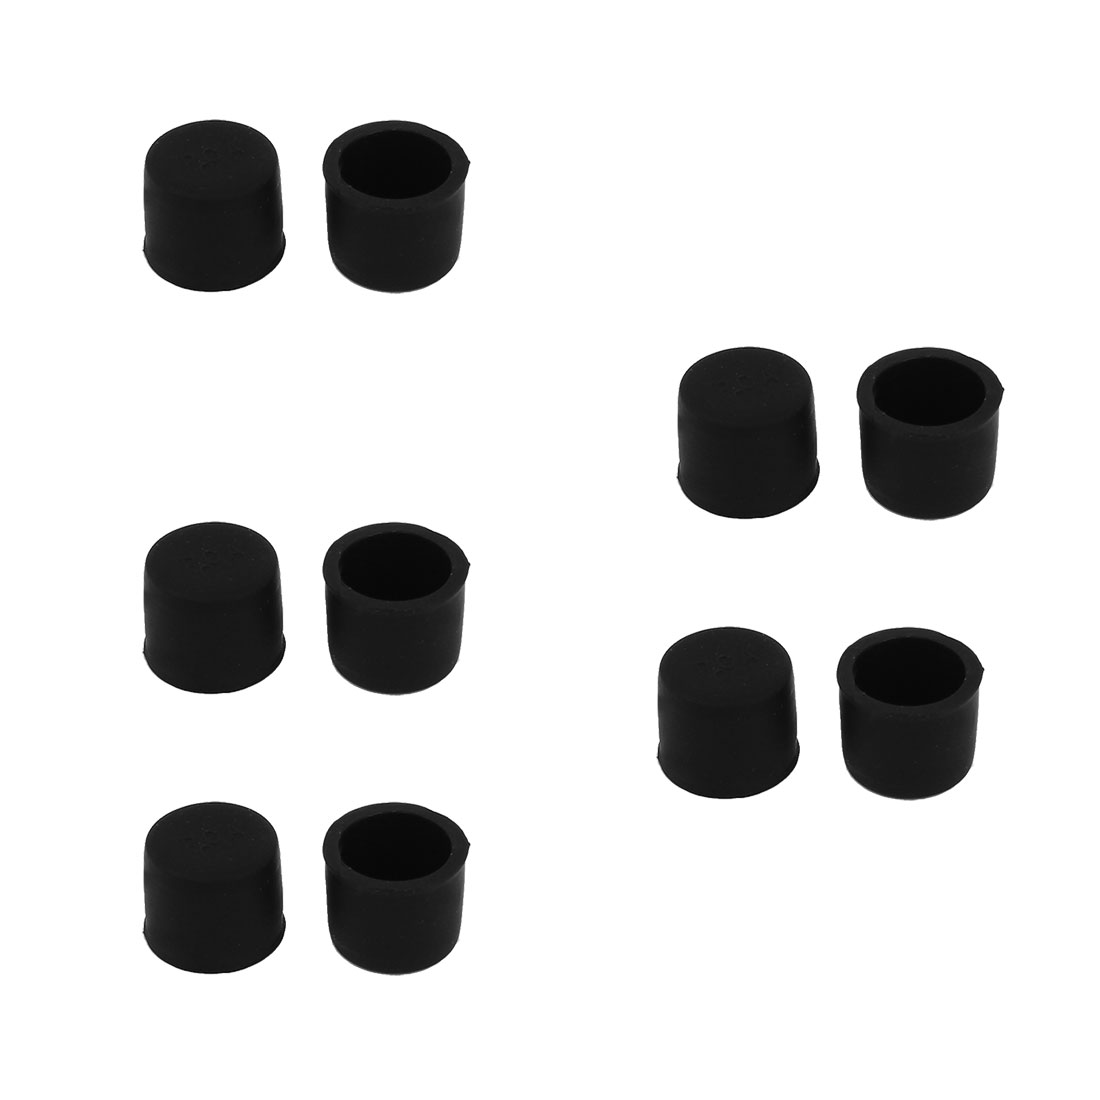 Silicone RCA Female Connector Dust Proof Cap Protector Cover Black 10 Pcs